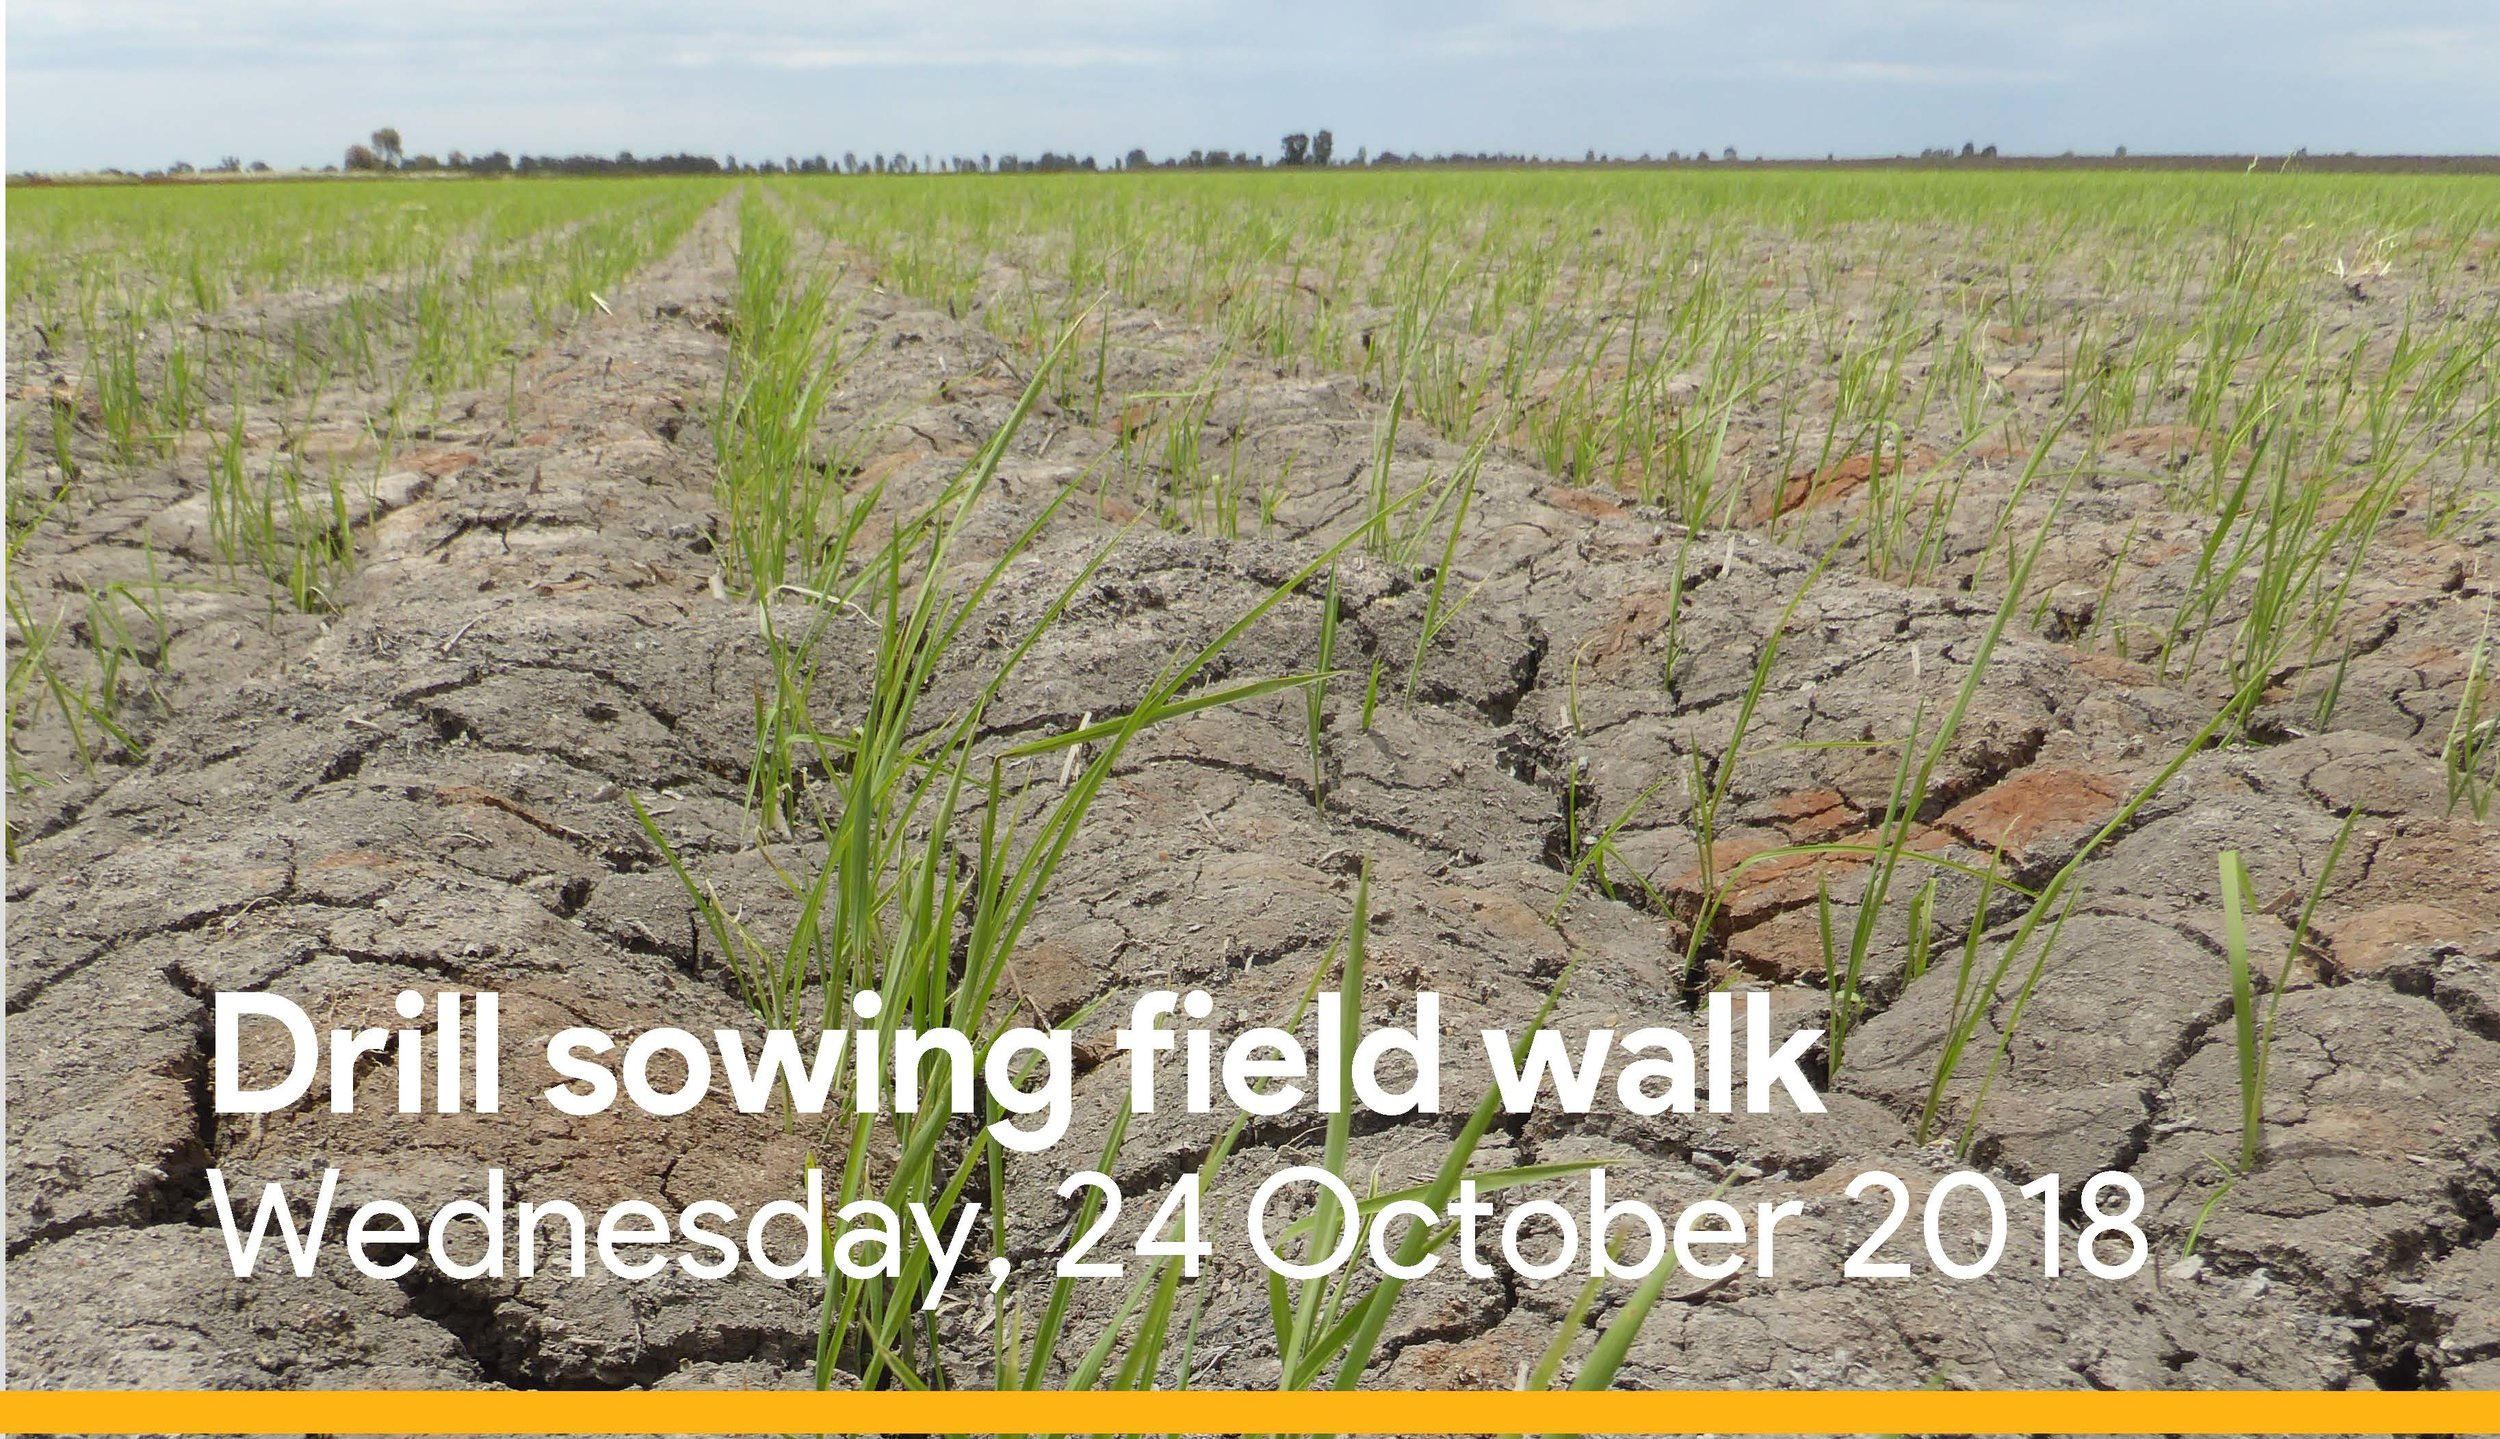 Drill sowing field walk Coly flyer.jpg